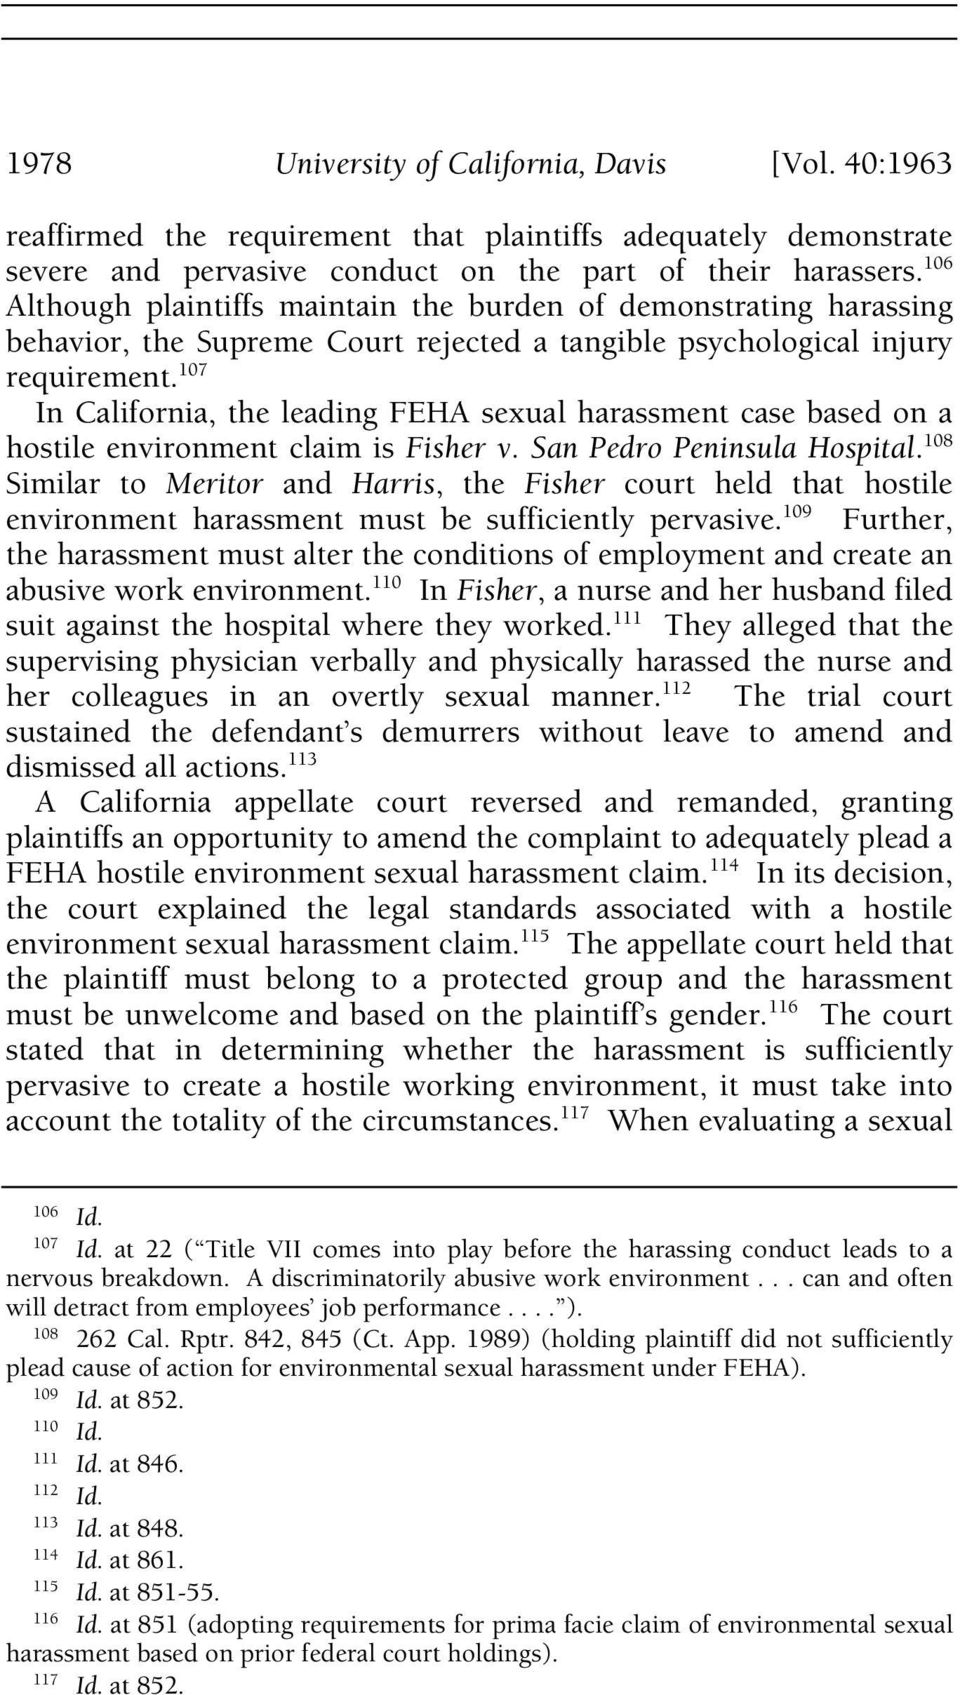 107 In California, the leading FEHA sexual harassment case based on a hostile environment claim is Fisher v. San Pedro Peninsula Hospital.